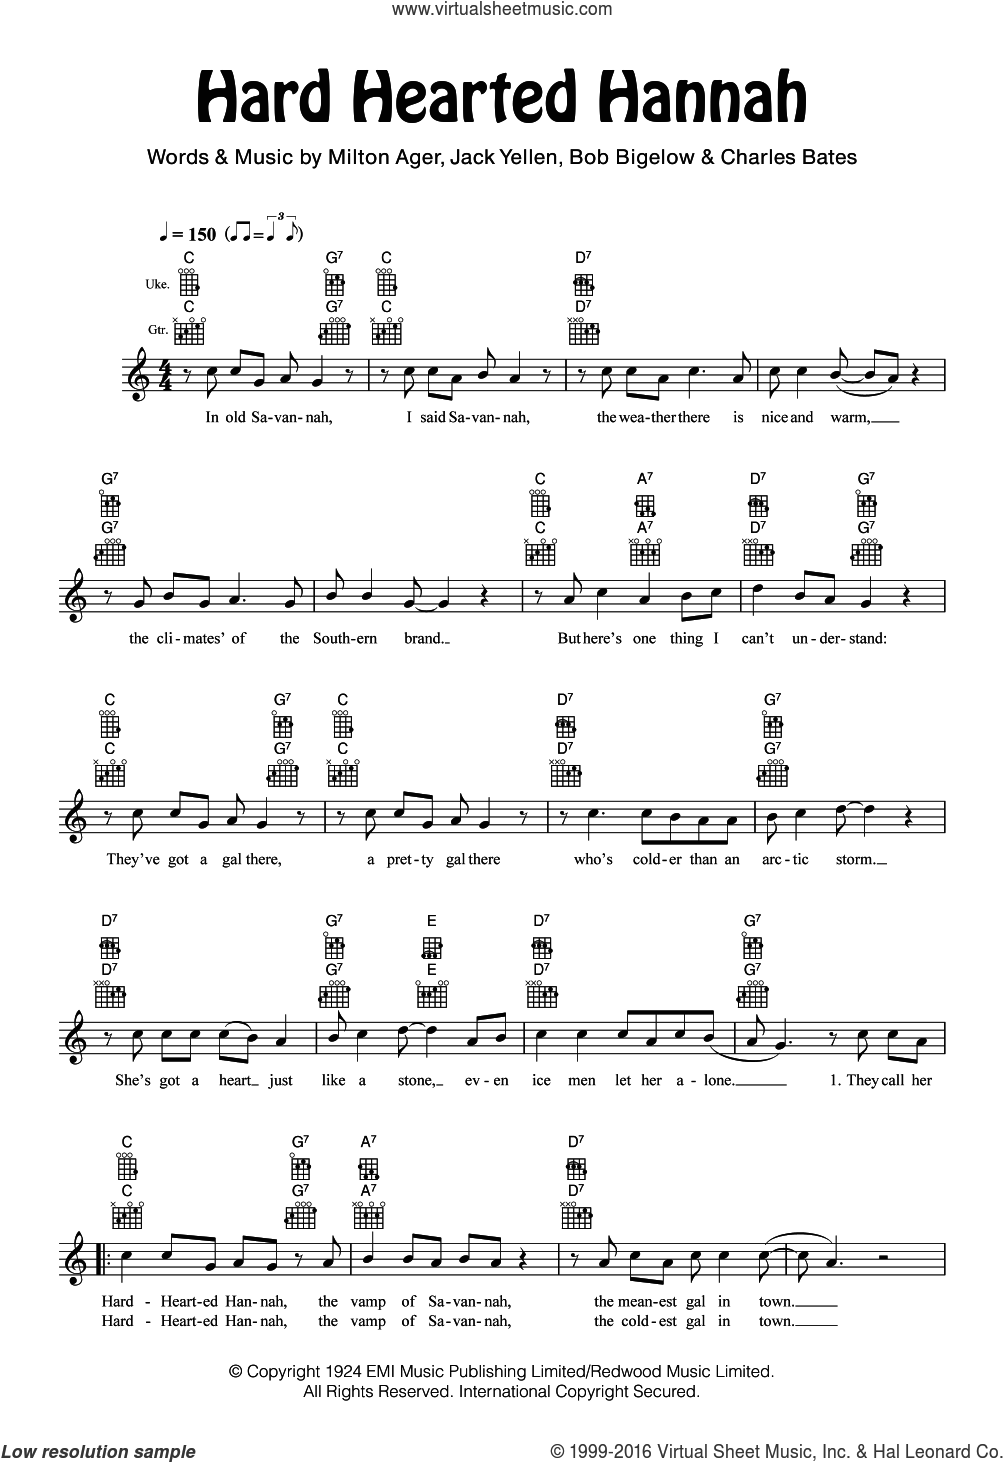 Hard Hearted Hannah sheet music for ukulele by Cliff Edwards, Bob Bigelow, Charles Bates, Jack Yellen and Milton Ager, intermediate. Score Image Preview.